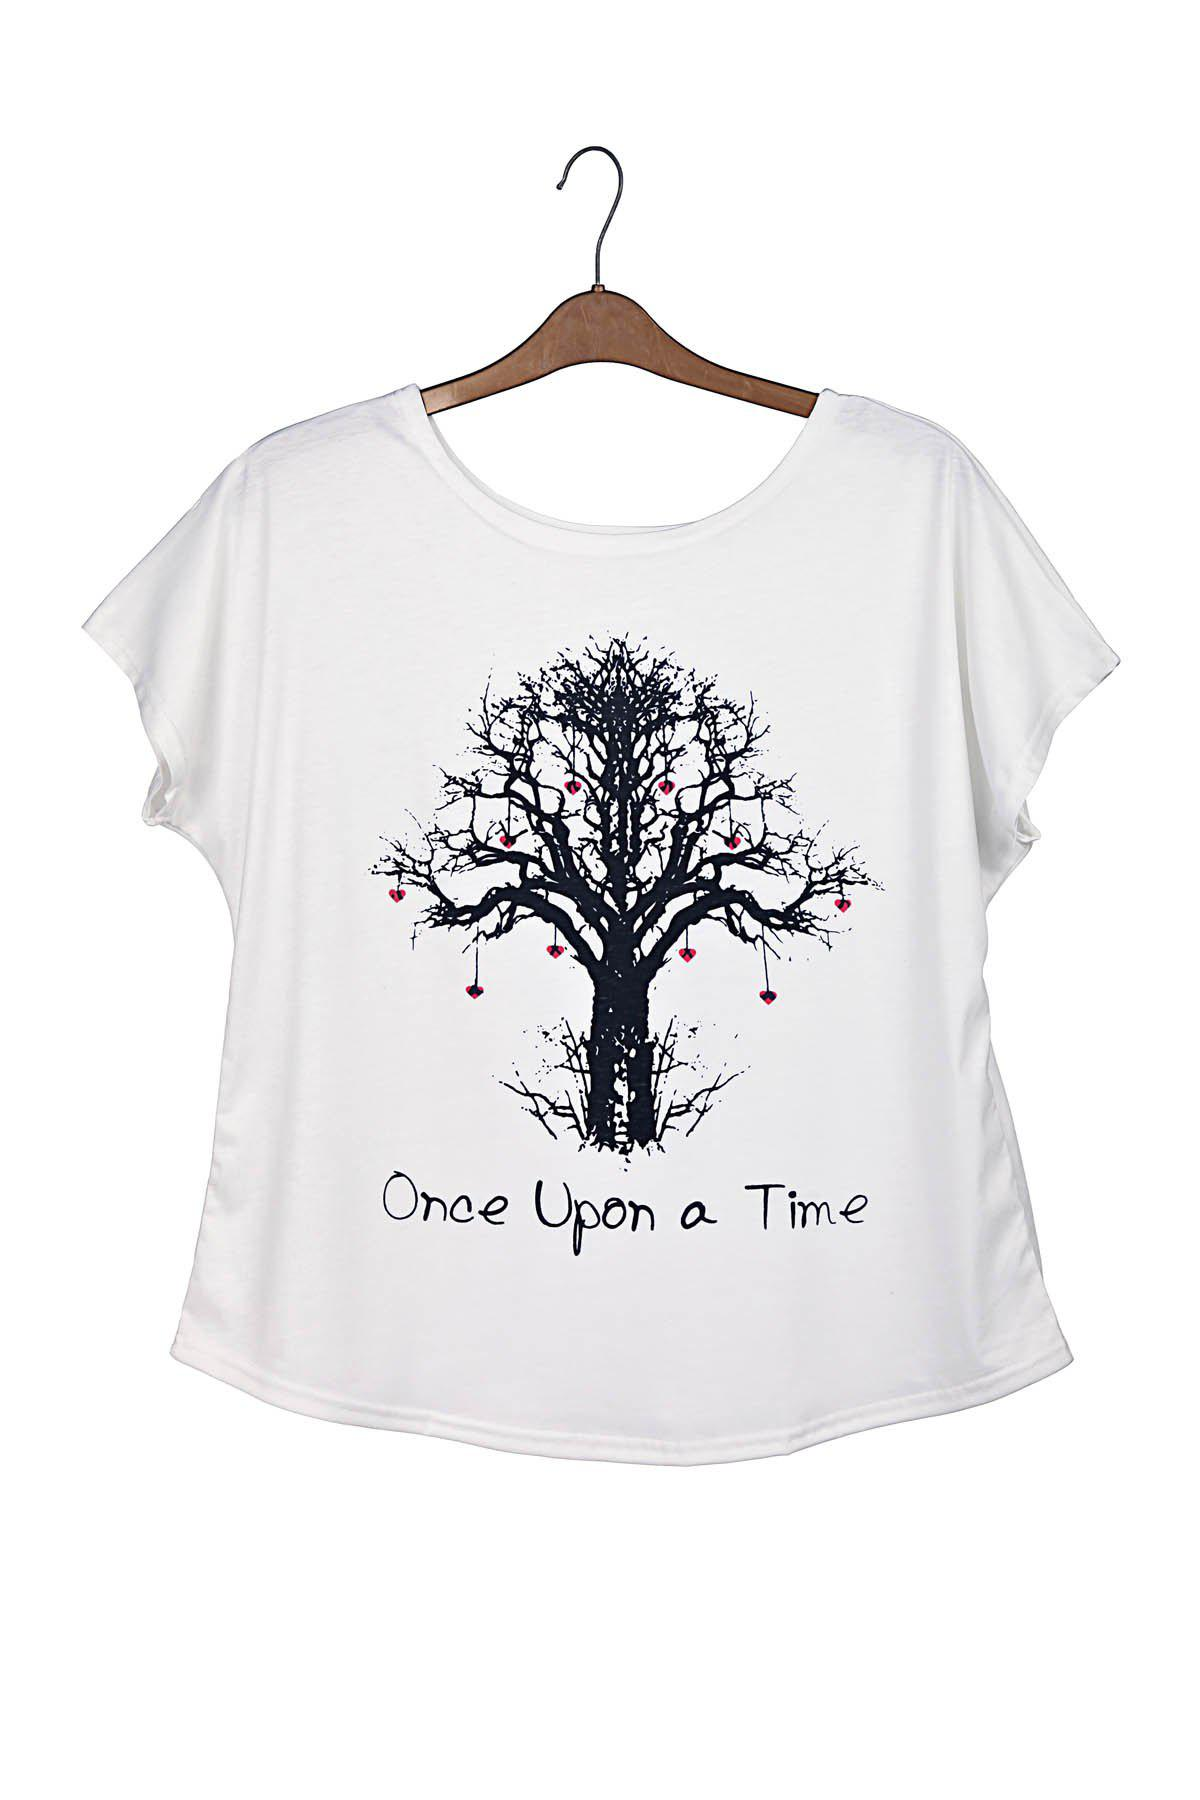 Wishing Tree Print Sweet Scoop Neck Batwing Sleeve Casual Women's T-Shirt - WHITE ONE SIZE